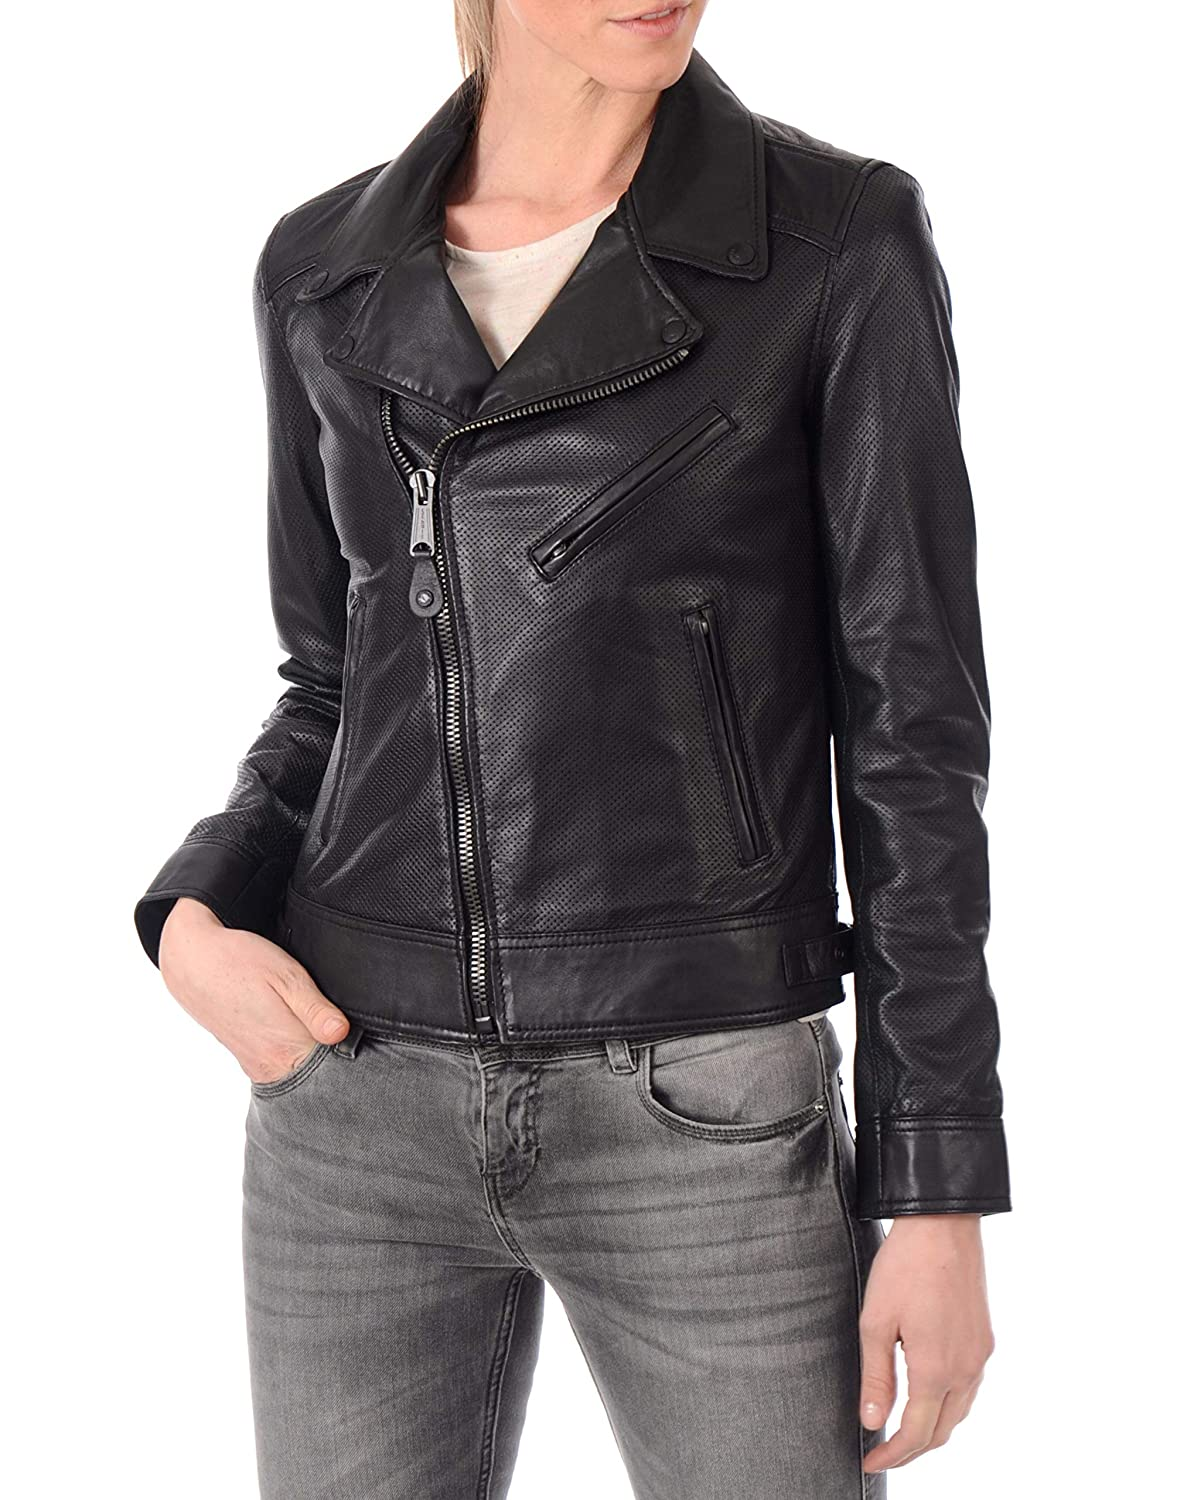 Black13fc DOLLY LAMB 100% Leather Jacket for Women  Slim Fit & Quilted  Moto, Bomber, Biker Winter Casual Wear